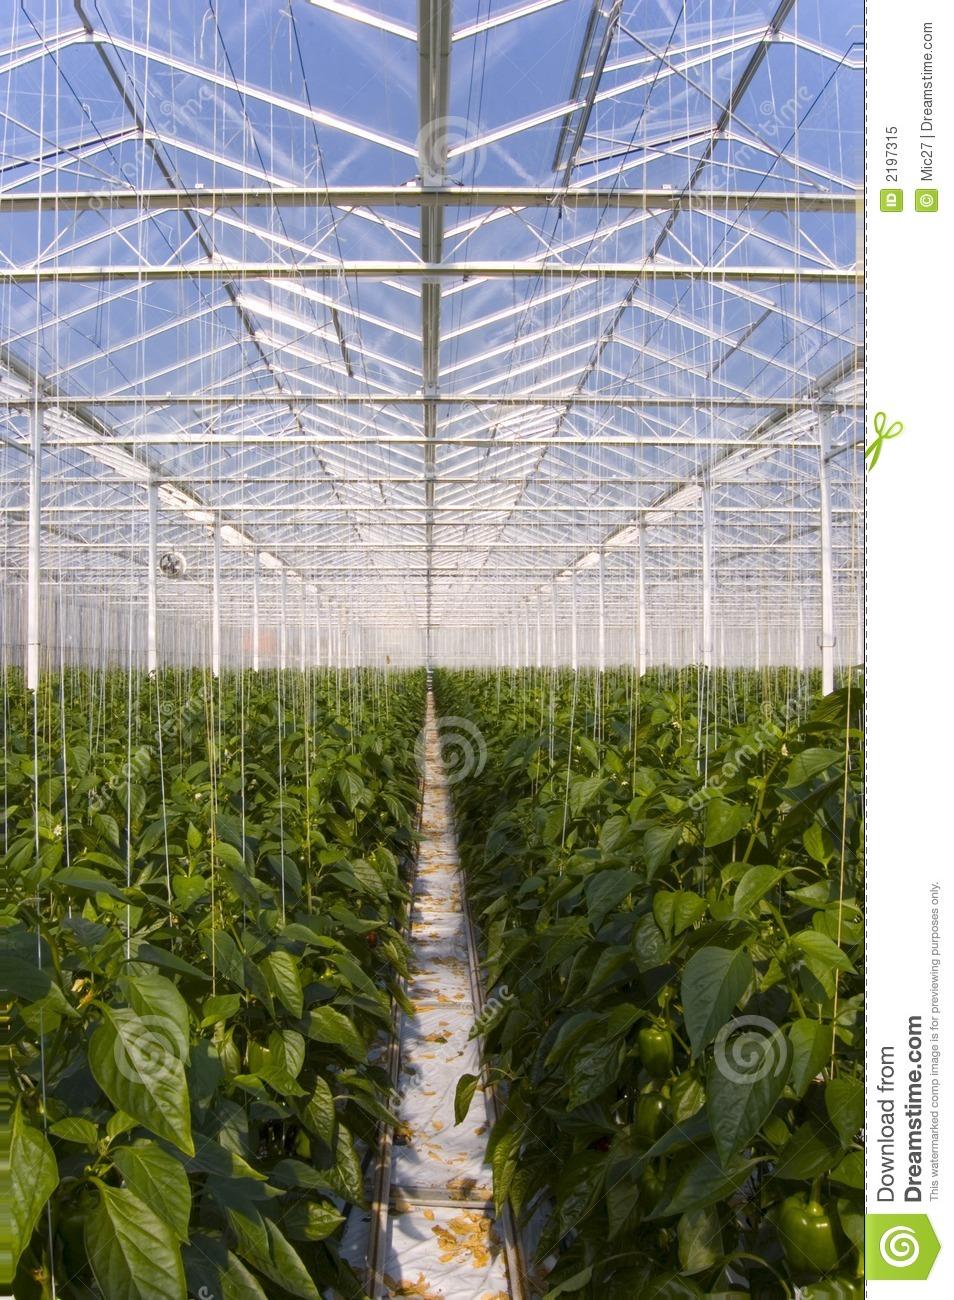 Greenhouse pepper plants stock image. Image of enclosed ...